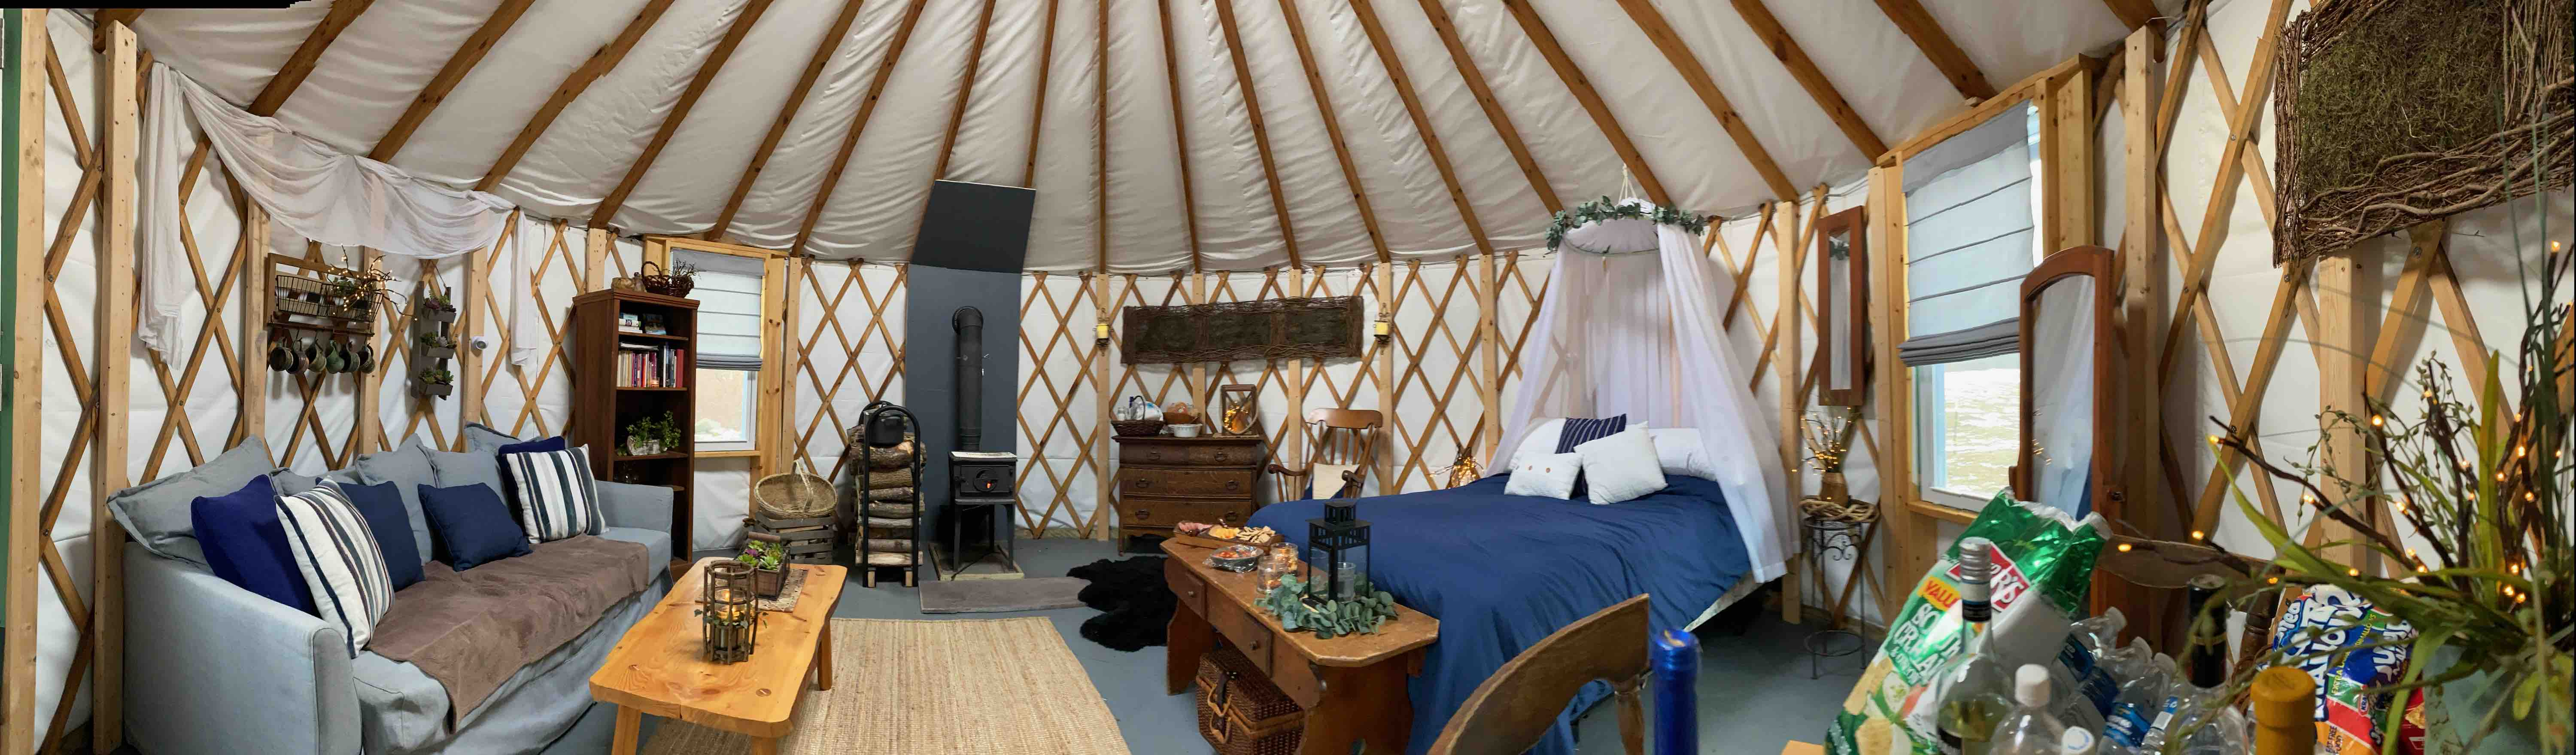 Yurt At The Farm Yurts For Rent In South Sterling Pennsylvania United States